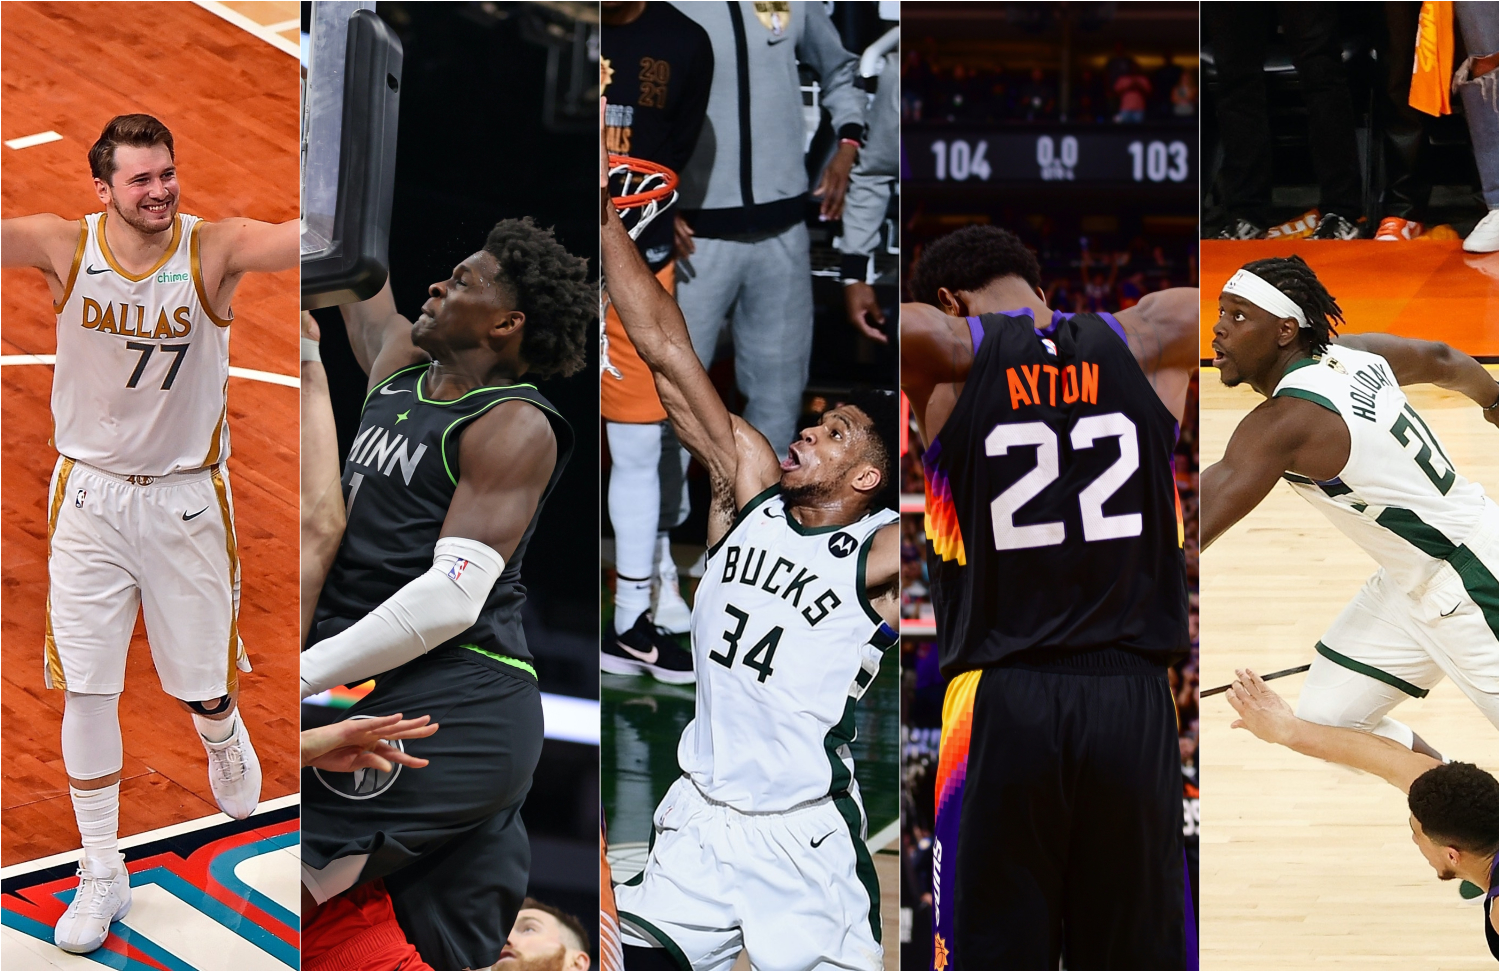 Ready for the 5 best plays of the year in the NBA? Let's jump right into it!